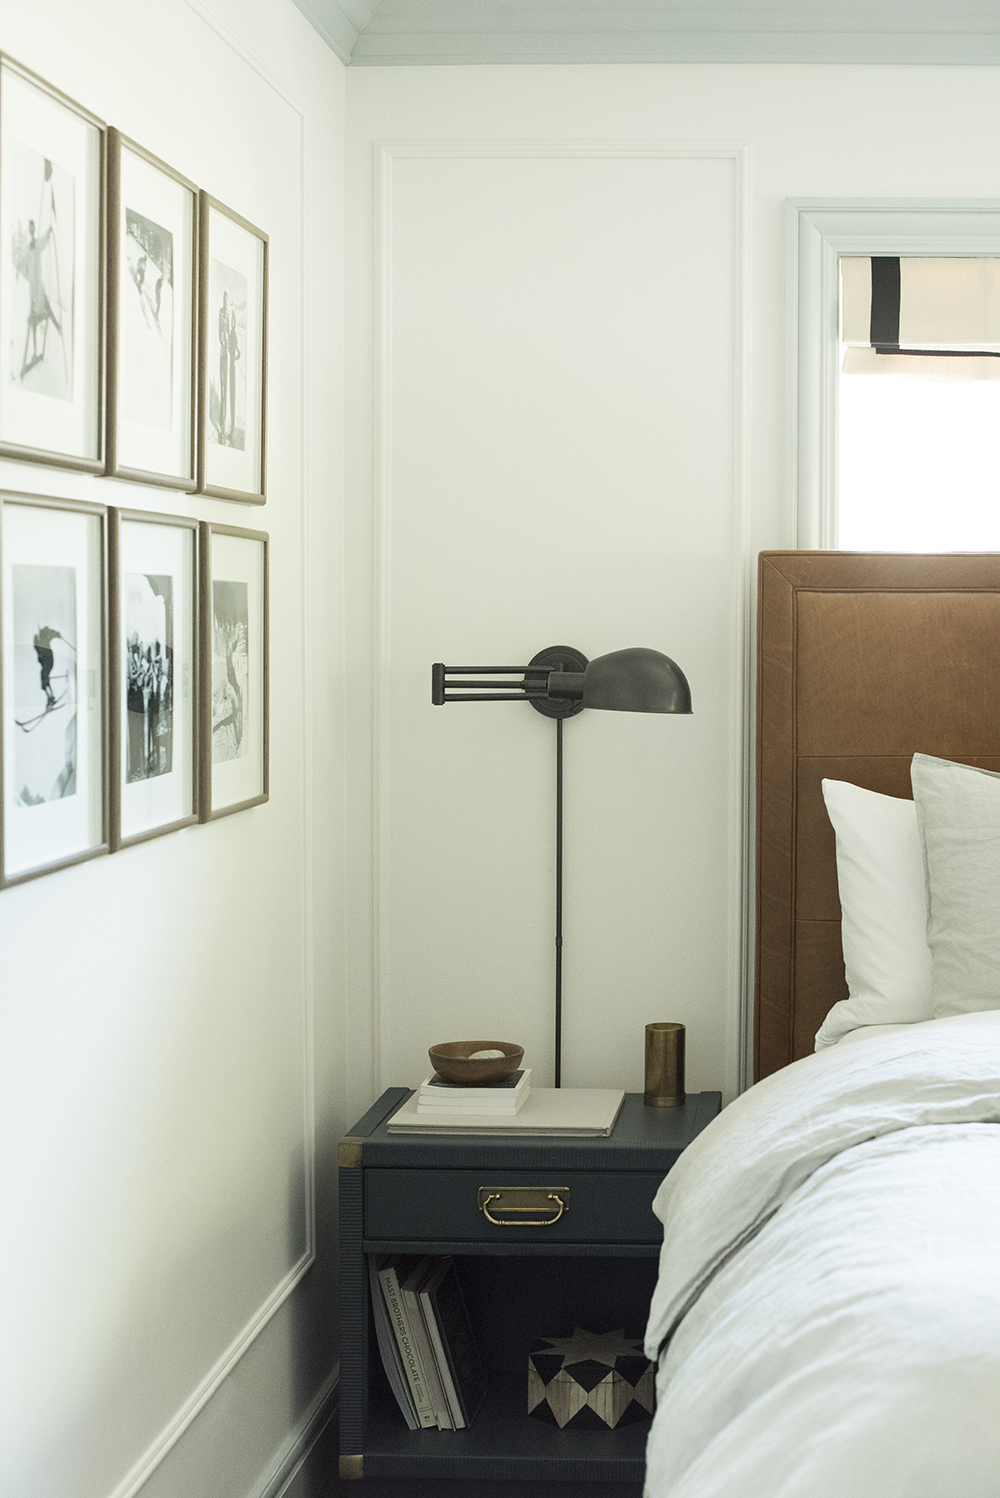 Bedside Table and Sconce